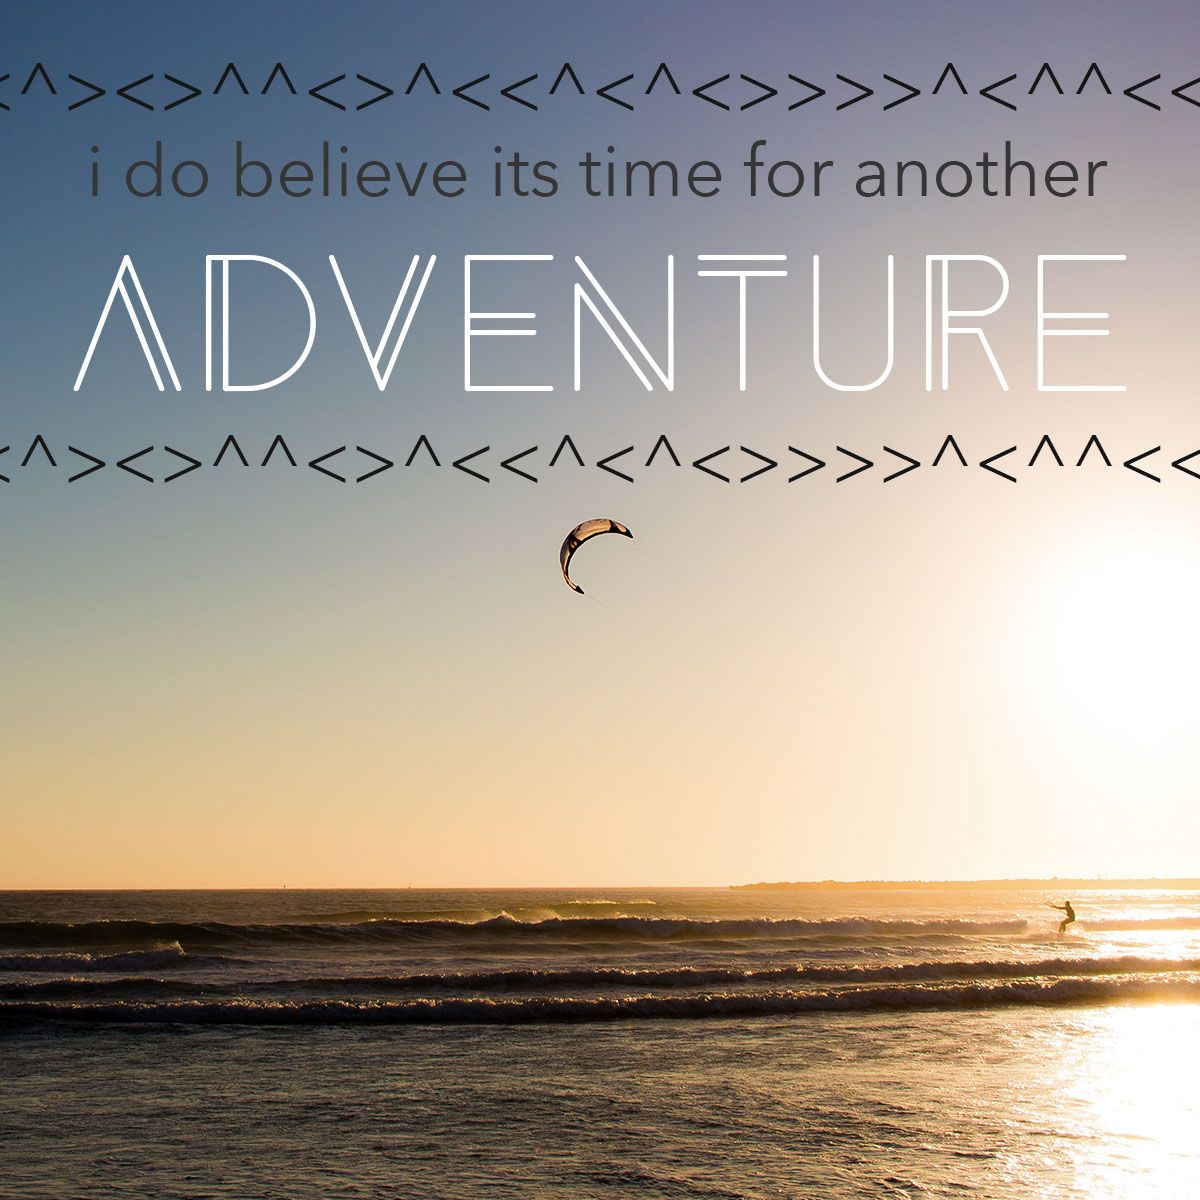 Raise your hand if you are ready for another adventure ...